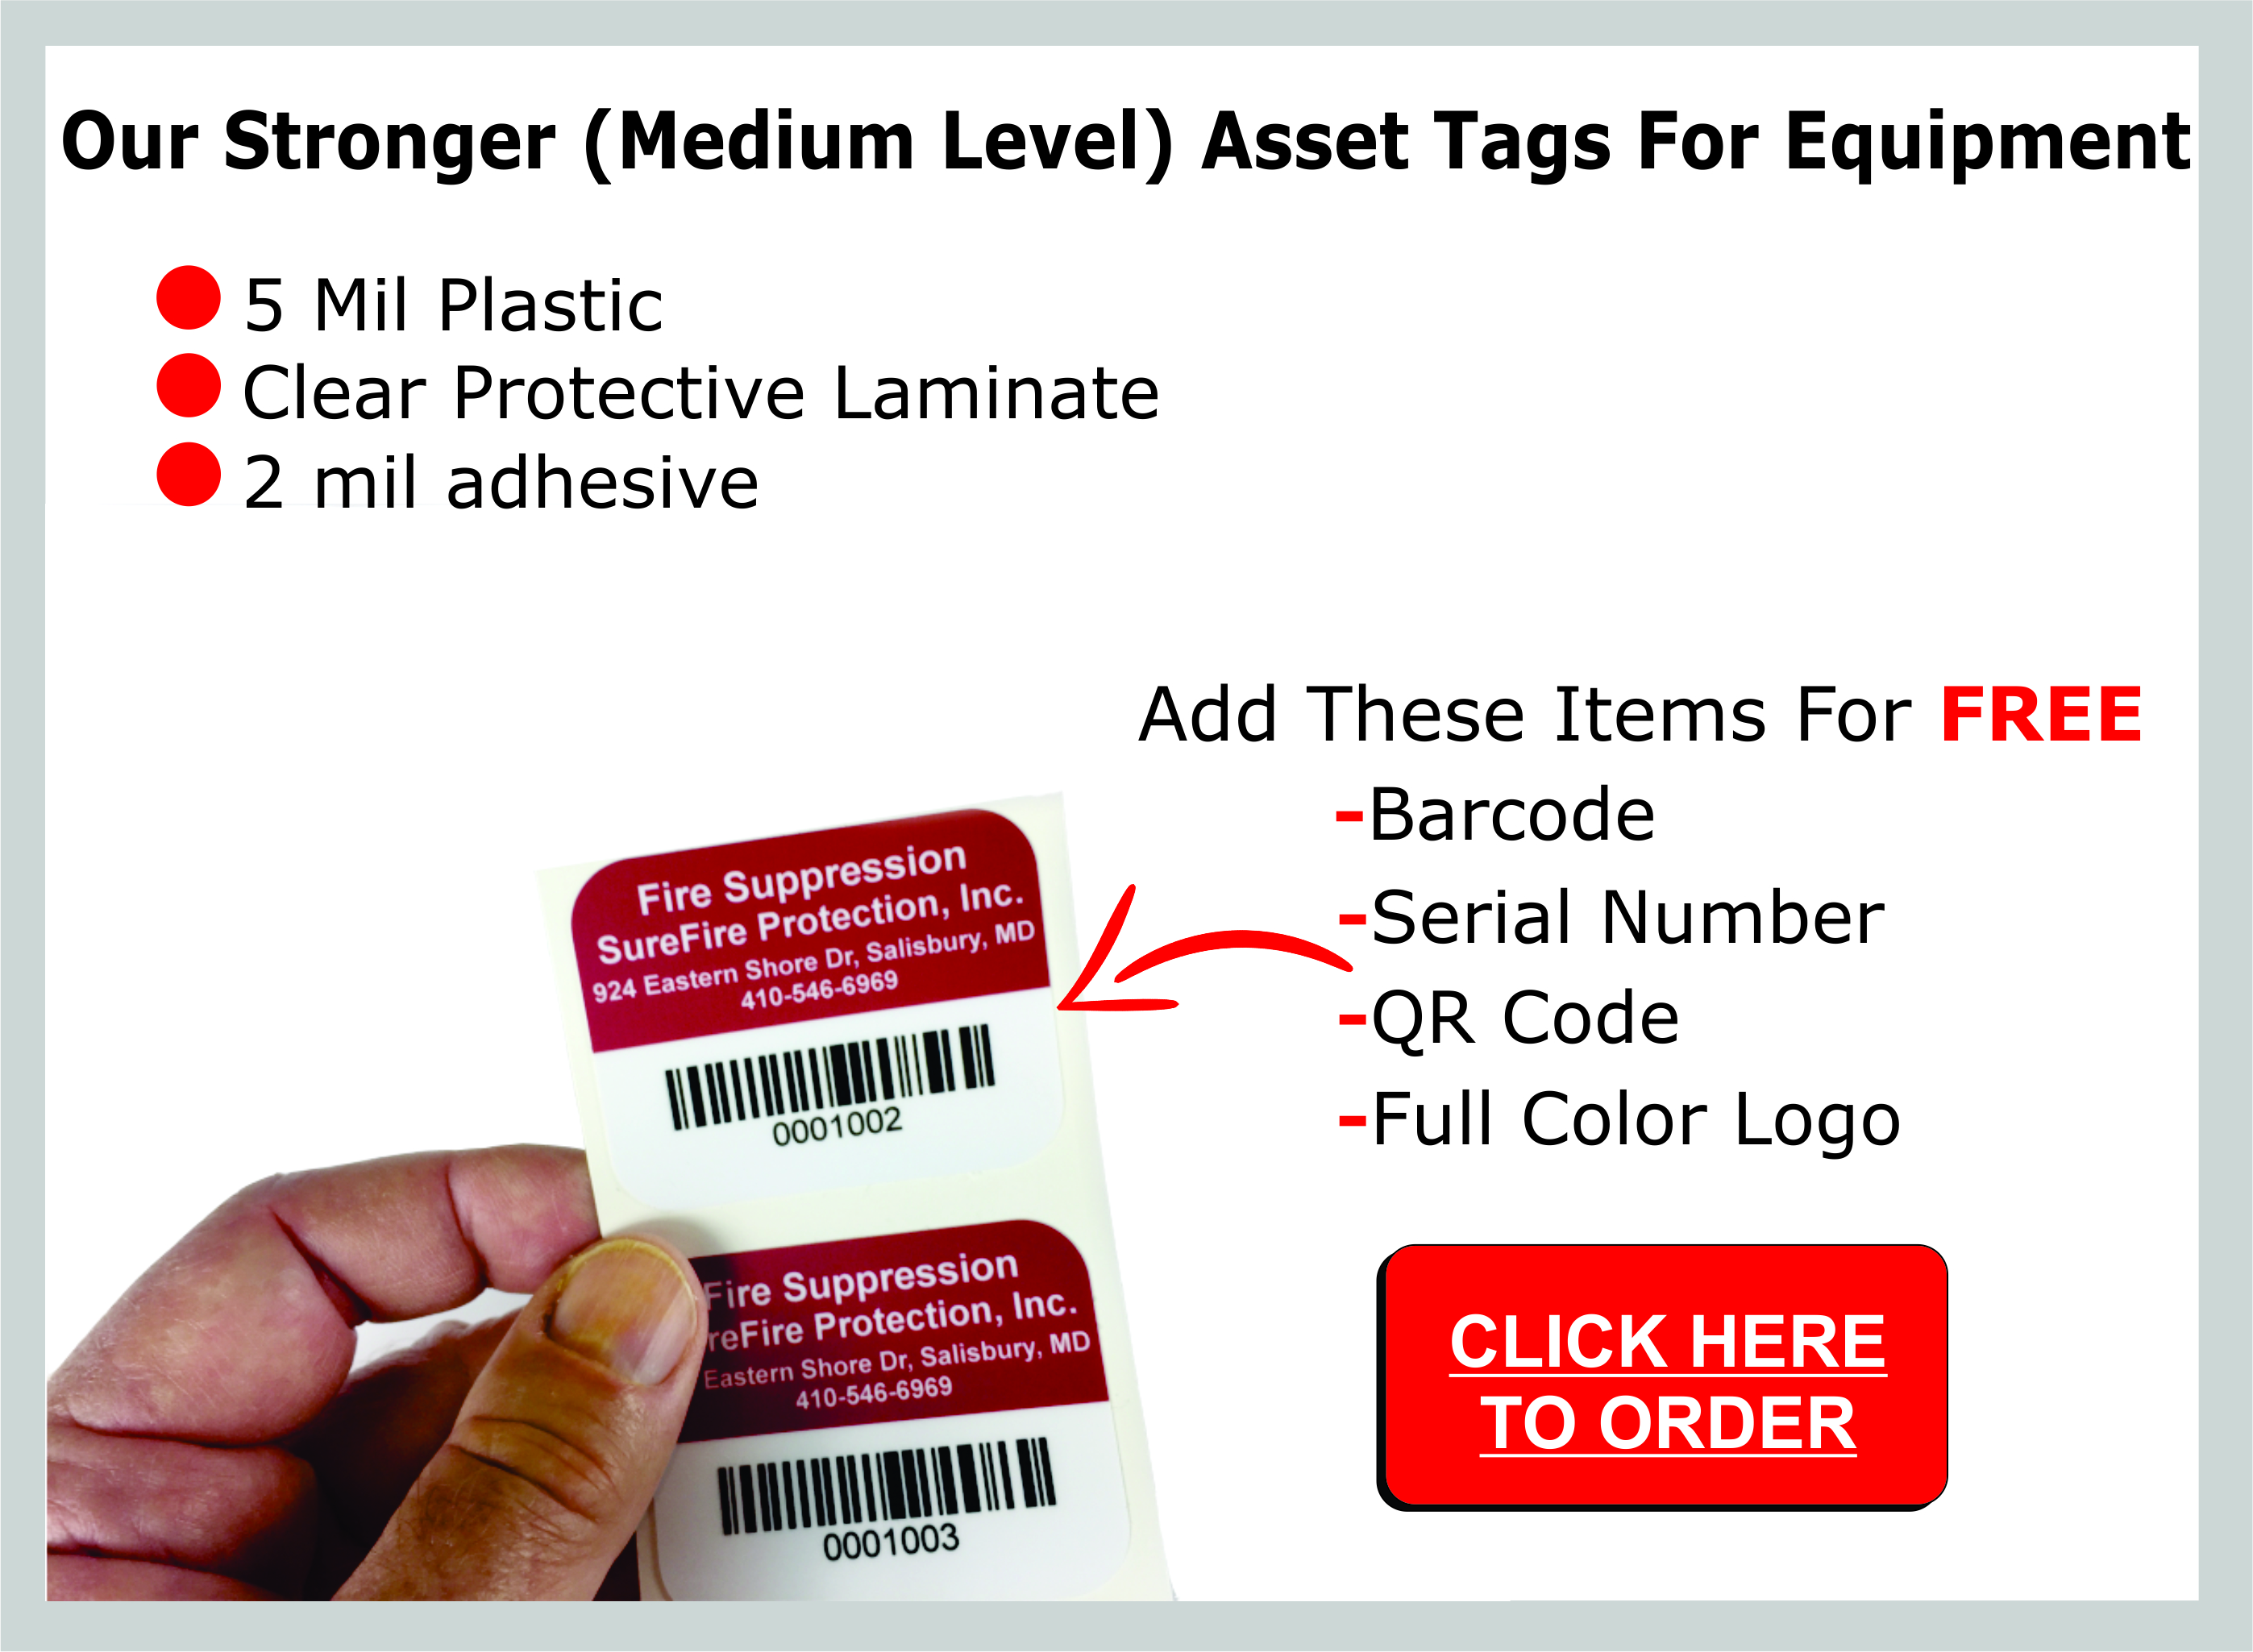 These are our asset tags for IT equipment